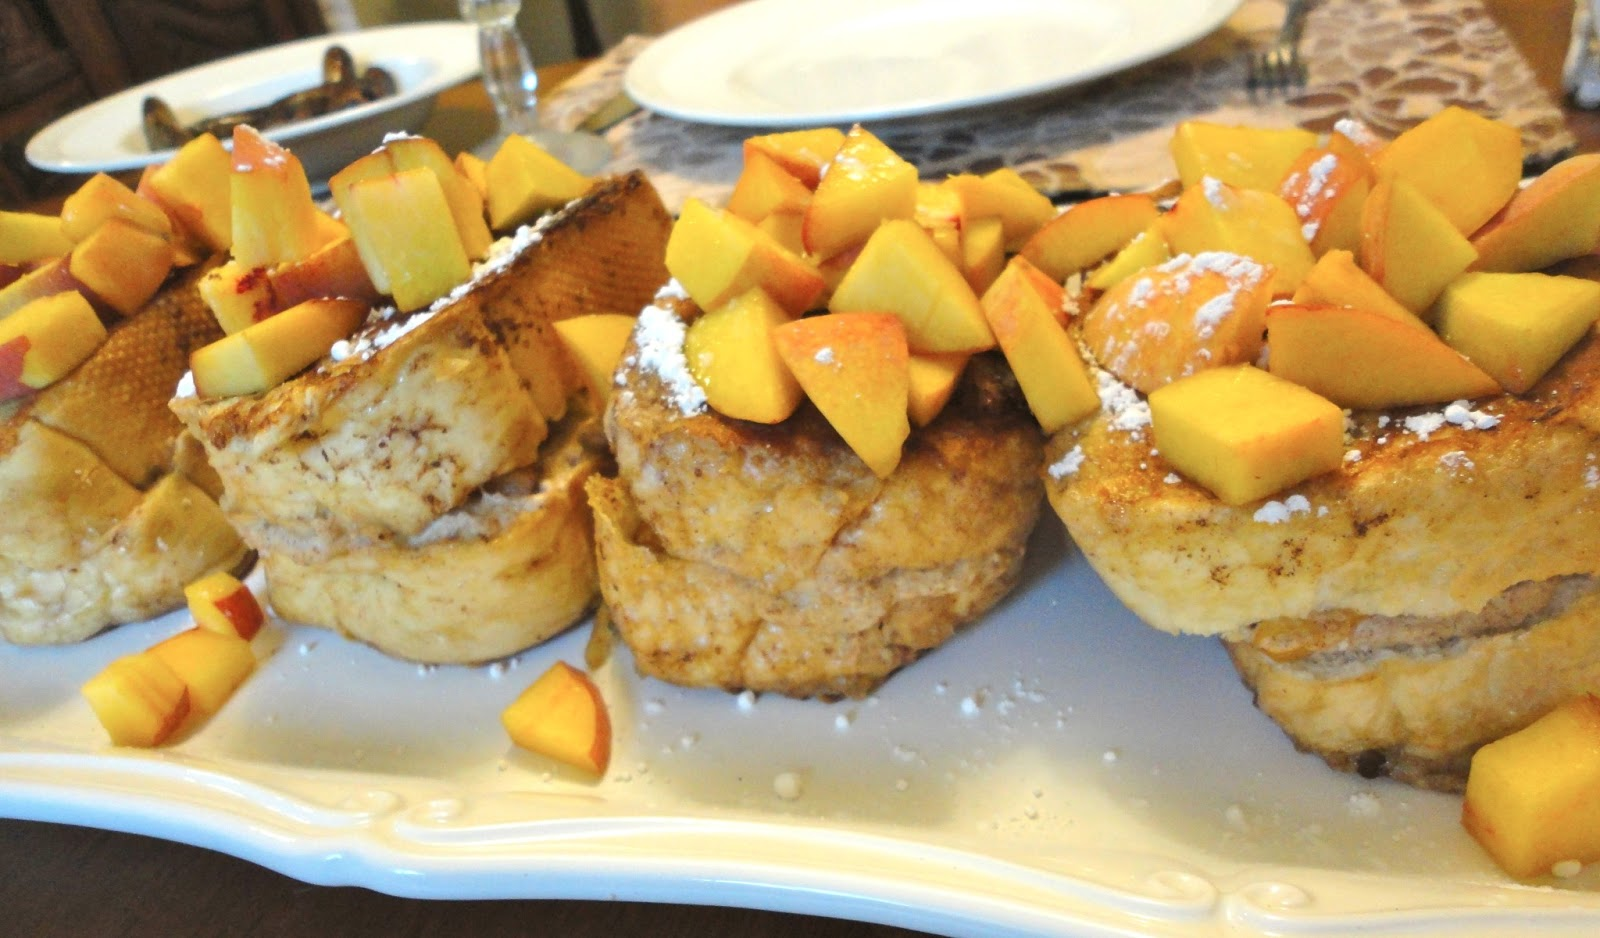 Blissful Baking: Peaches & Cream Stuffed French Toast